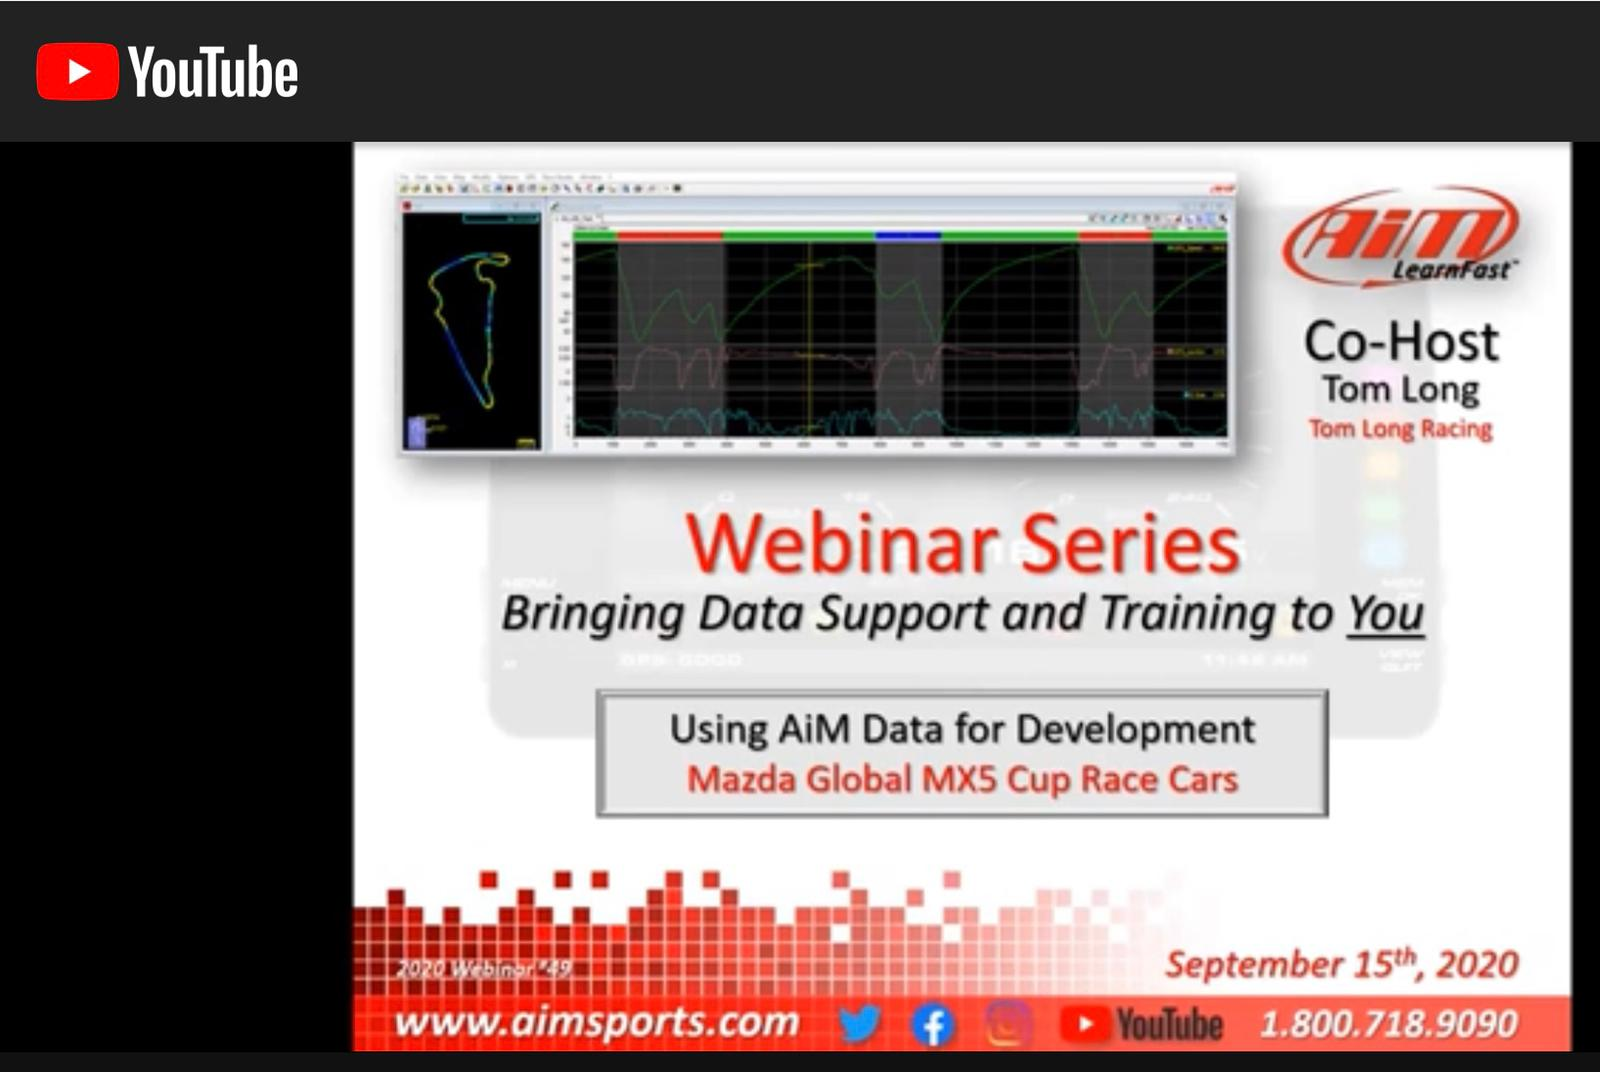 Speaking of data, I participated in an informative AiM Sports webinar this past week, discussing the power of data systems and how to use them as a tool. You can watch it on YouTube at this link.